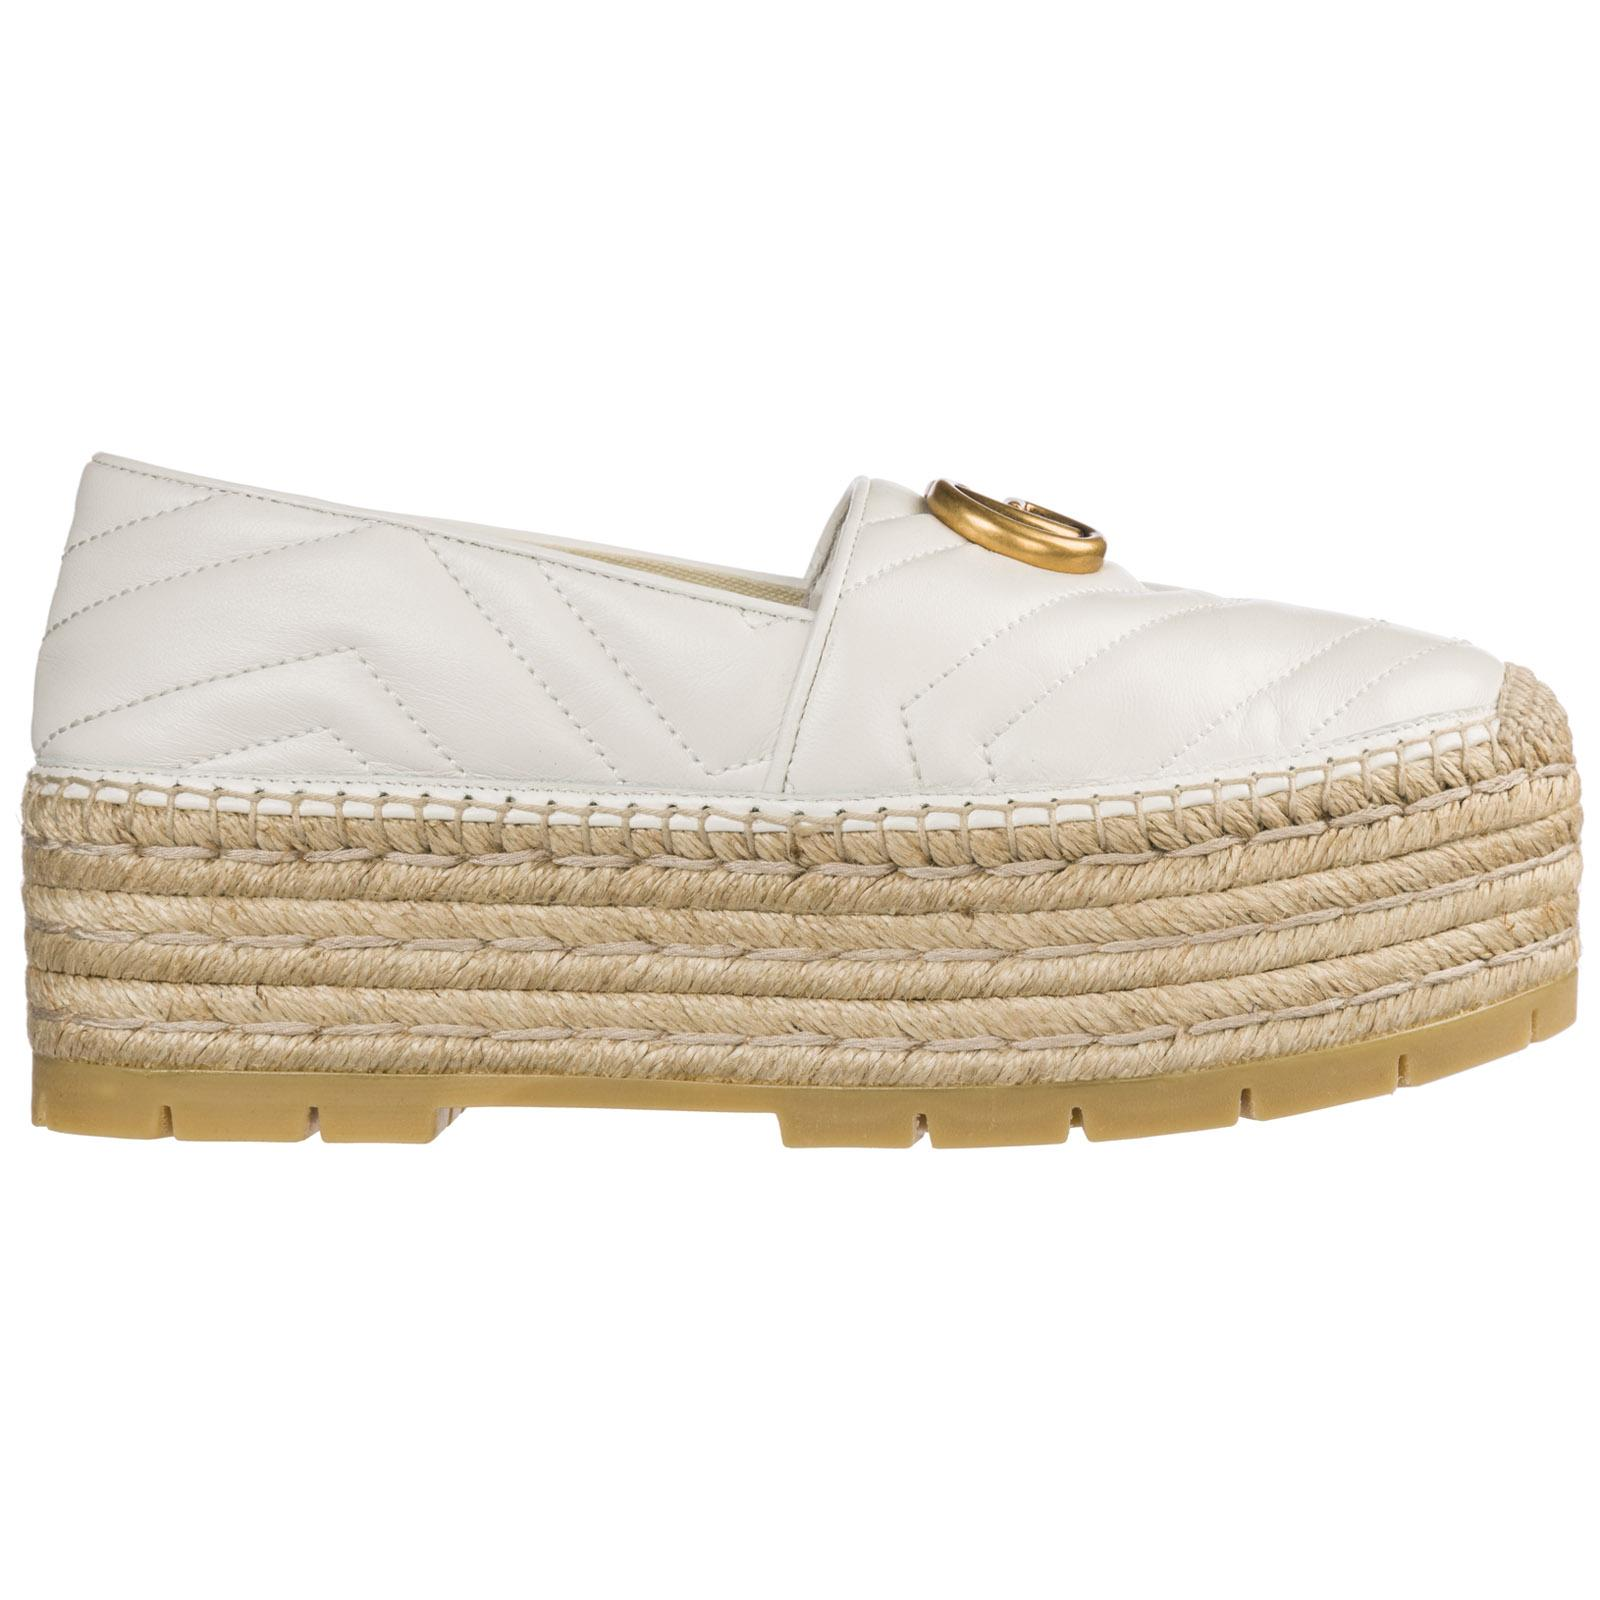 19bd800d3b1 Lyst - Gucci Espadrilles Slip On Shoes in White